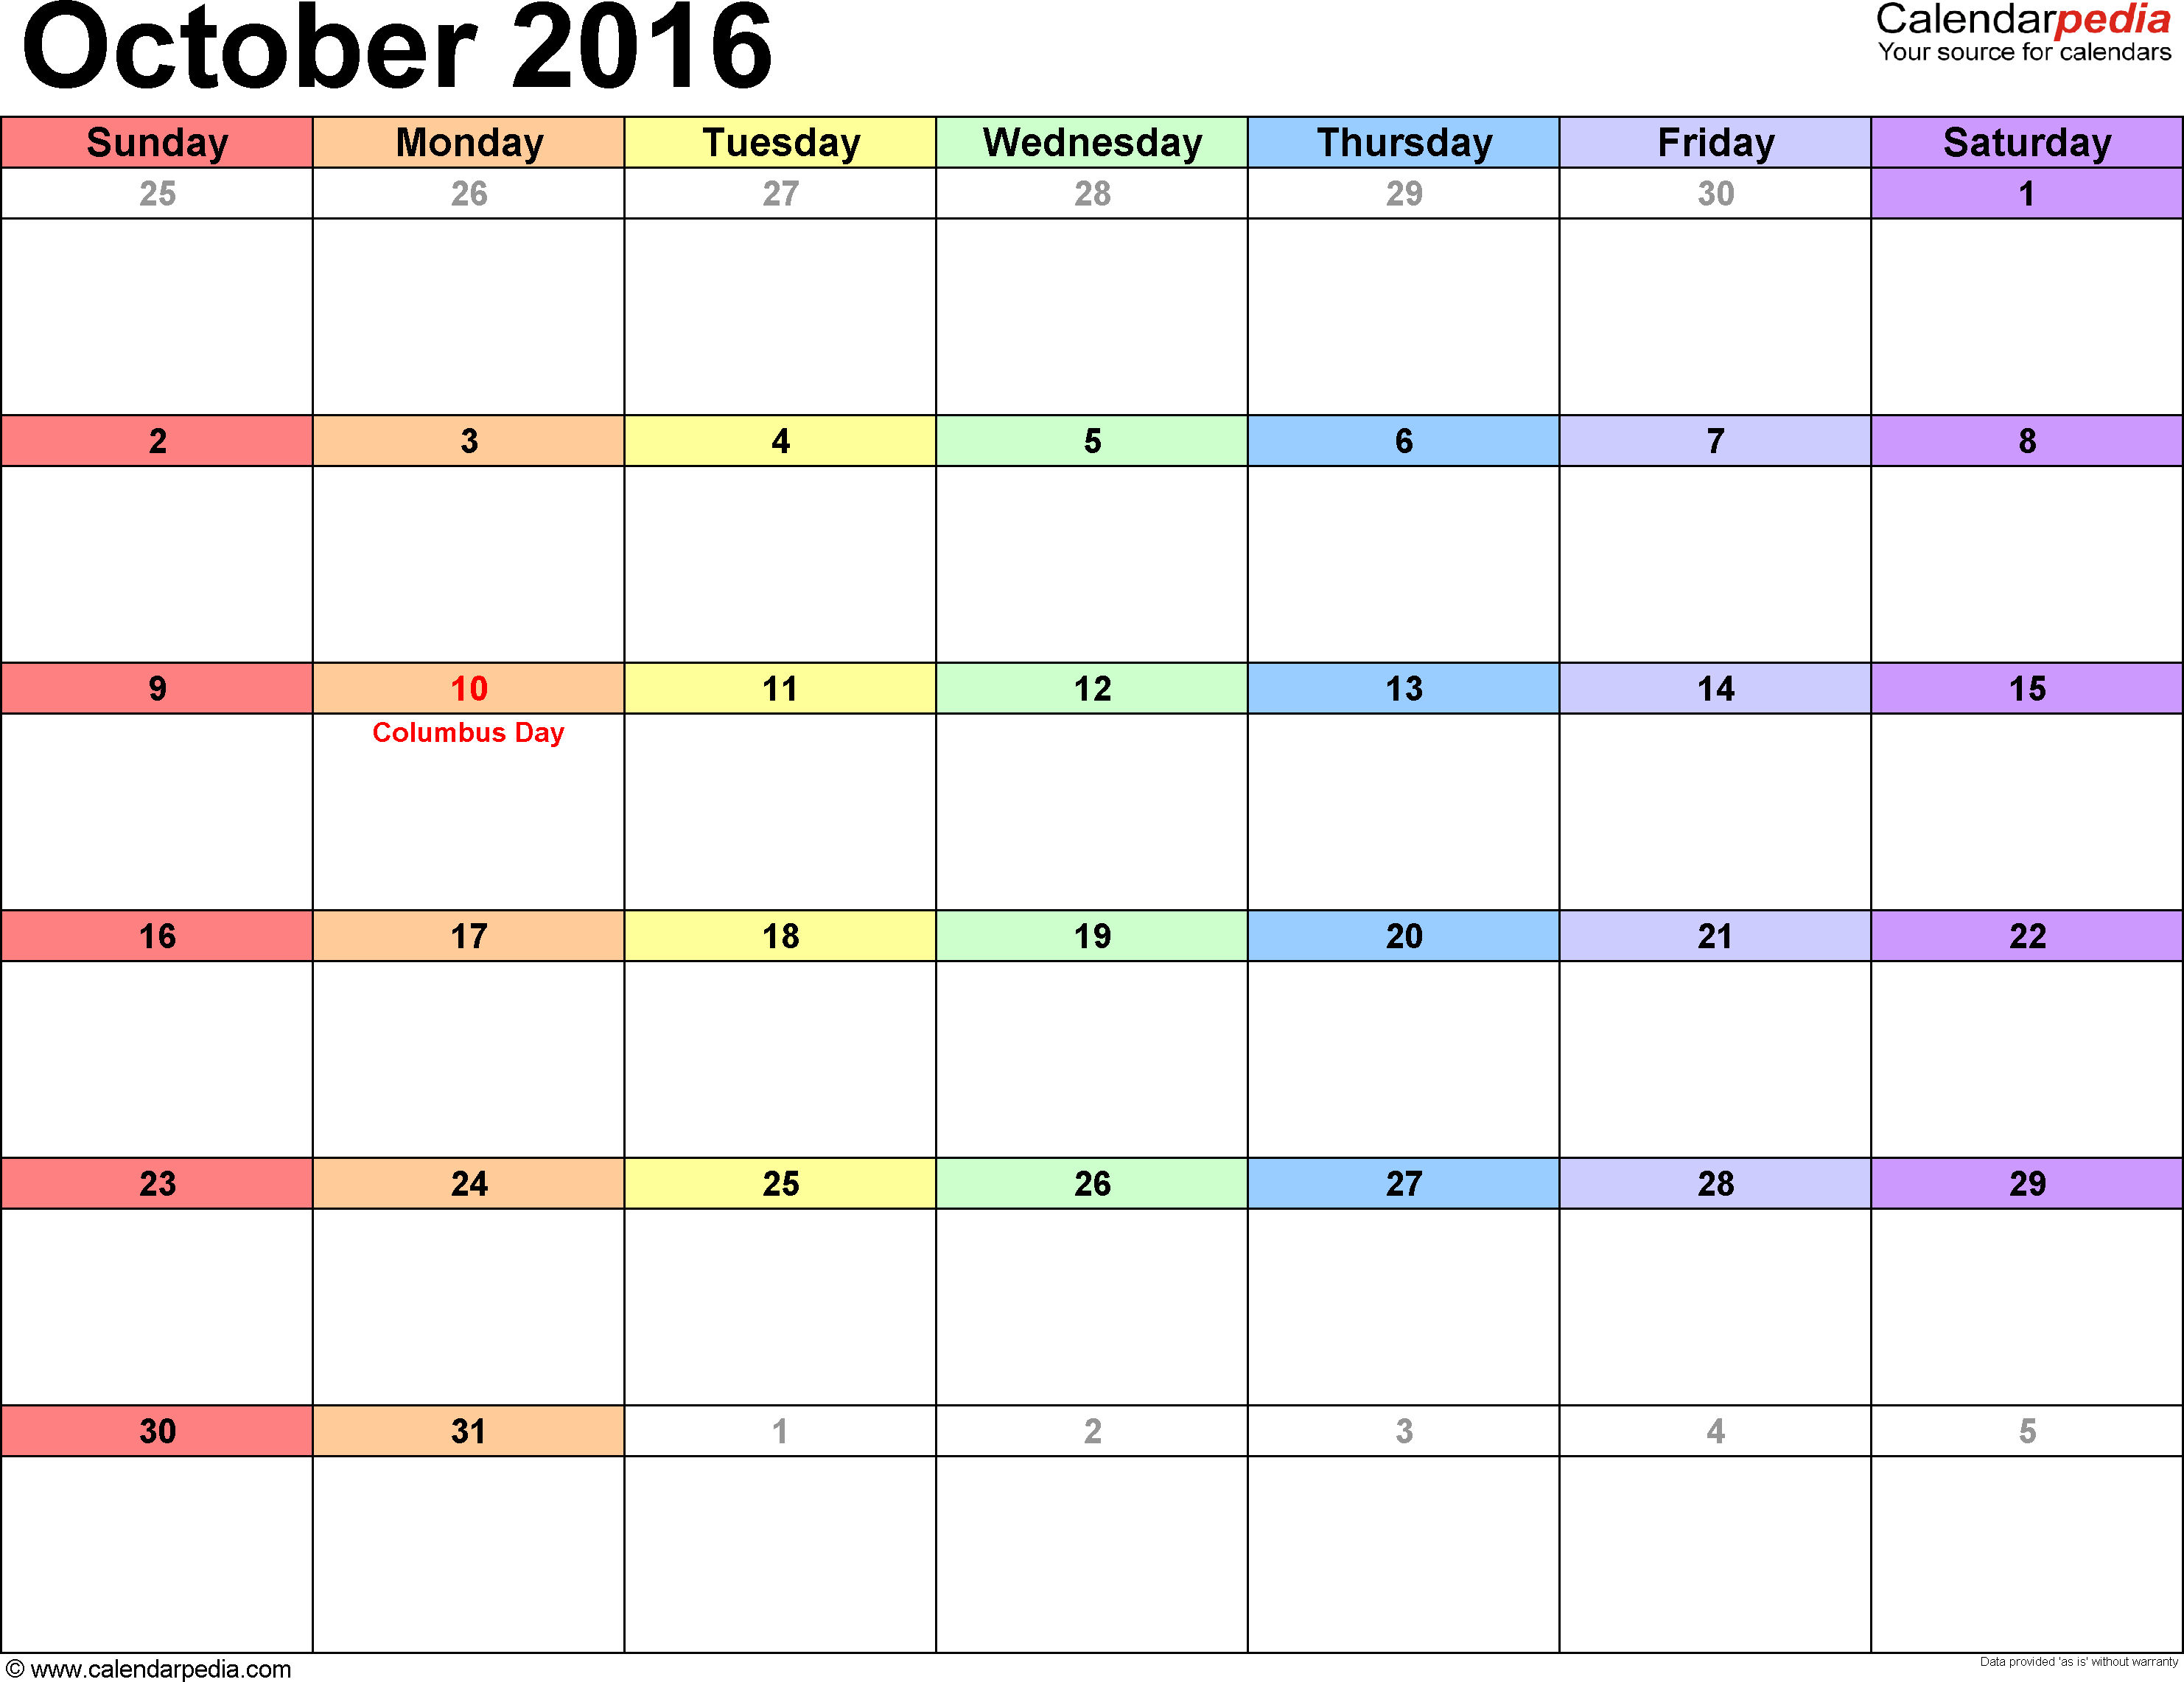 photograph relating to October Calendar Printable named Oct 2016 Calendars for Term, Excel PDF